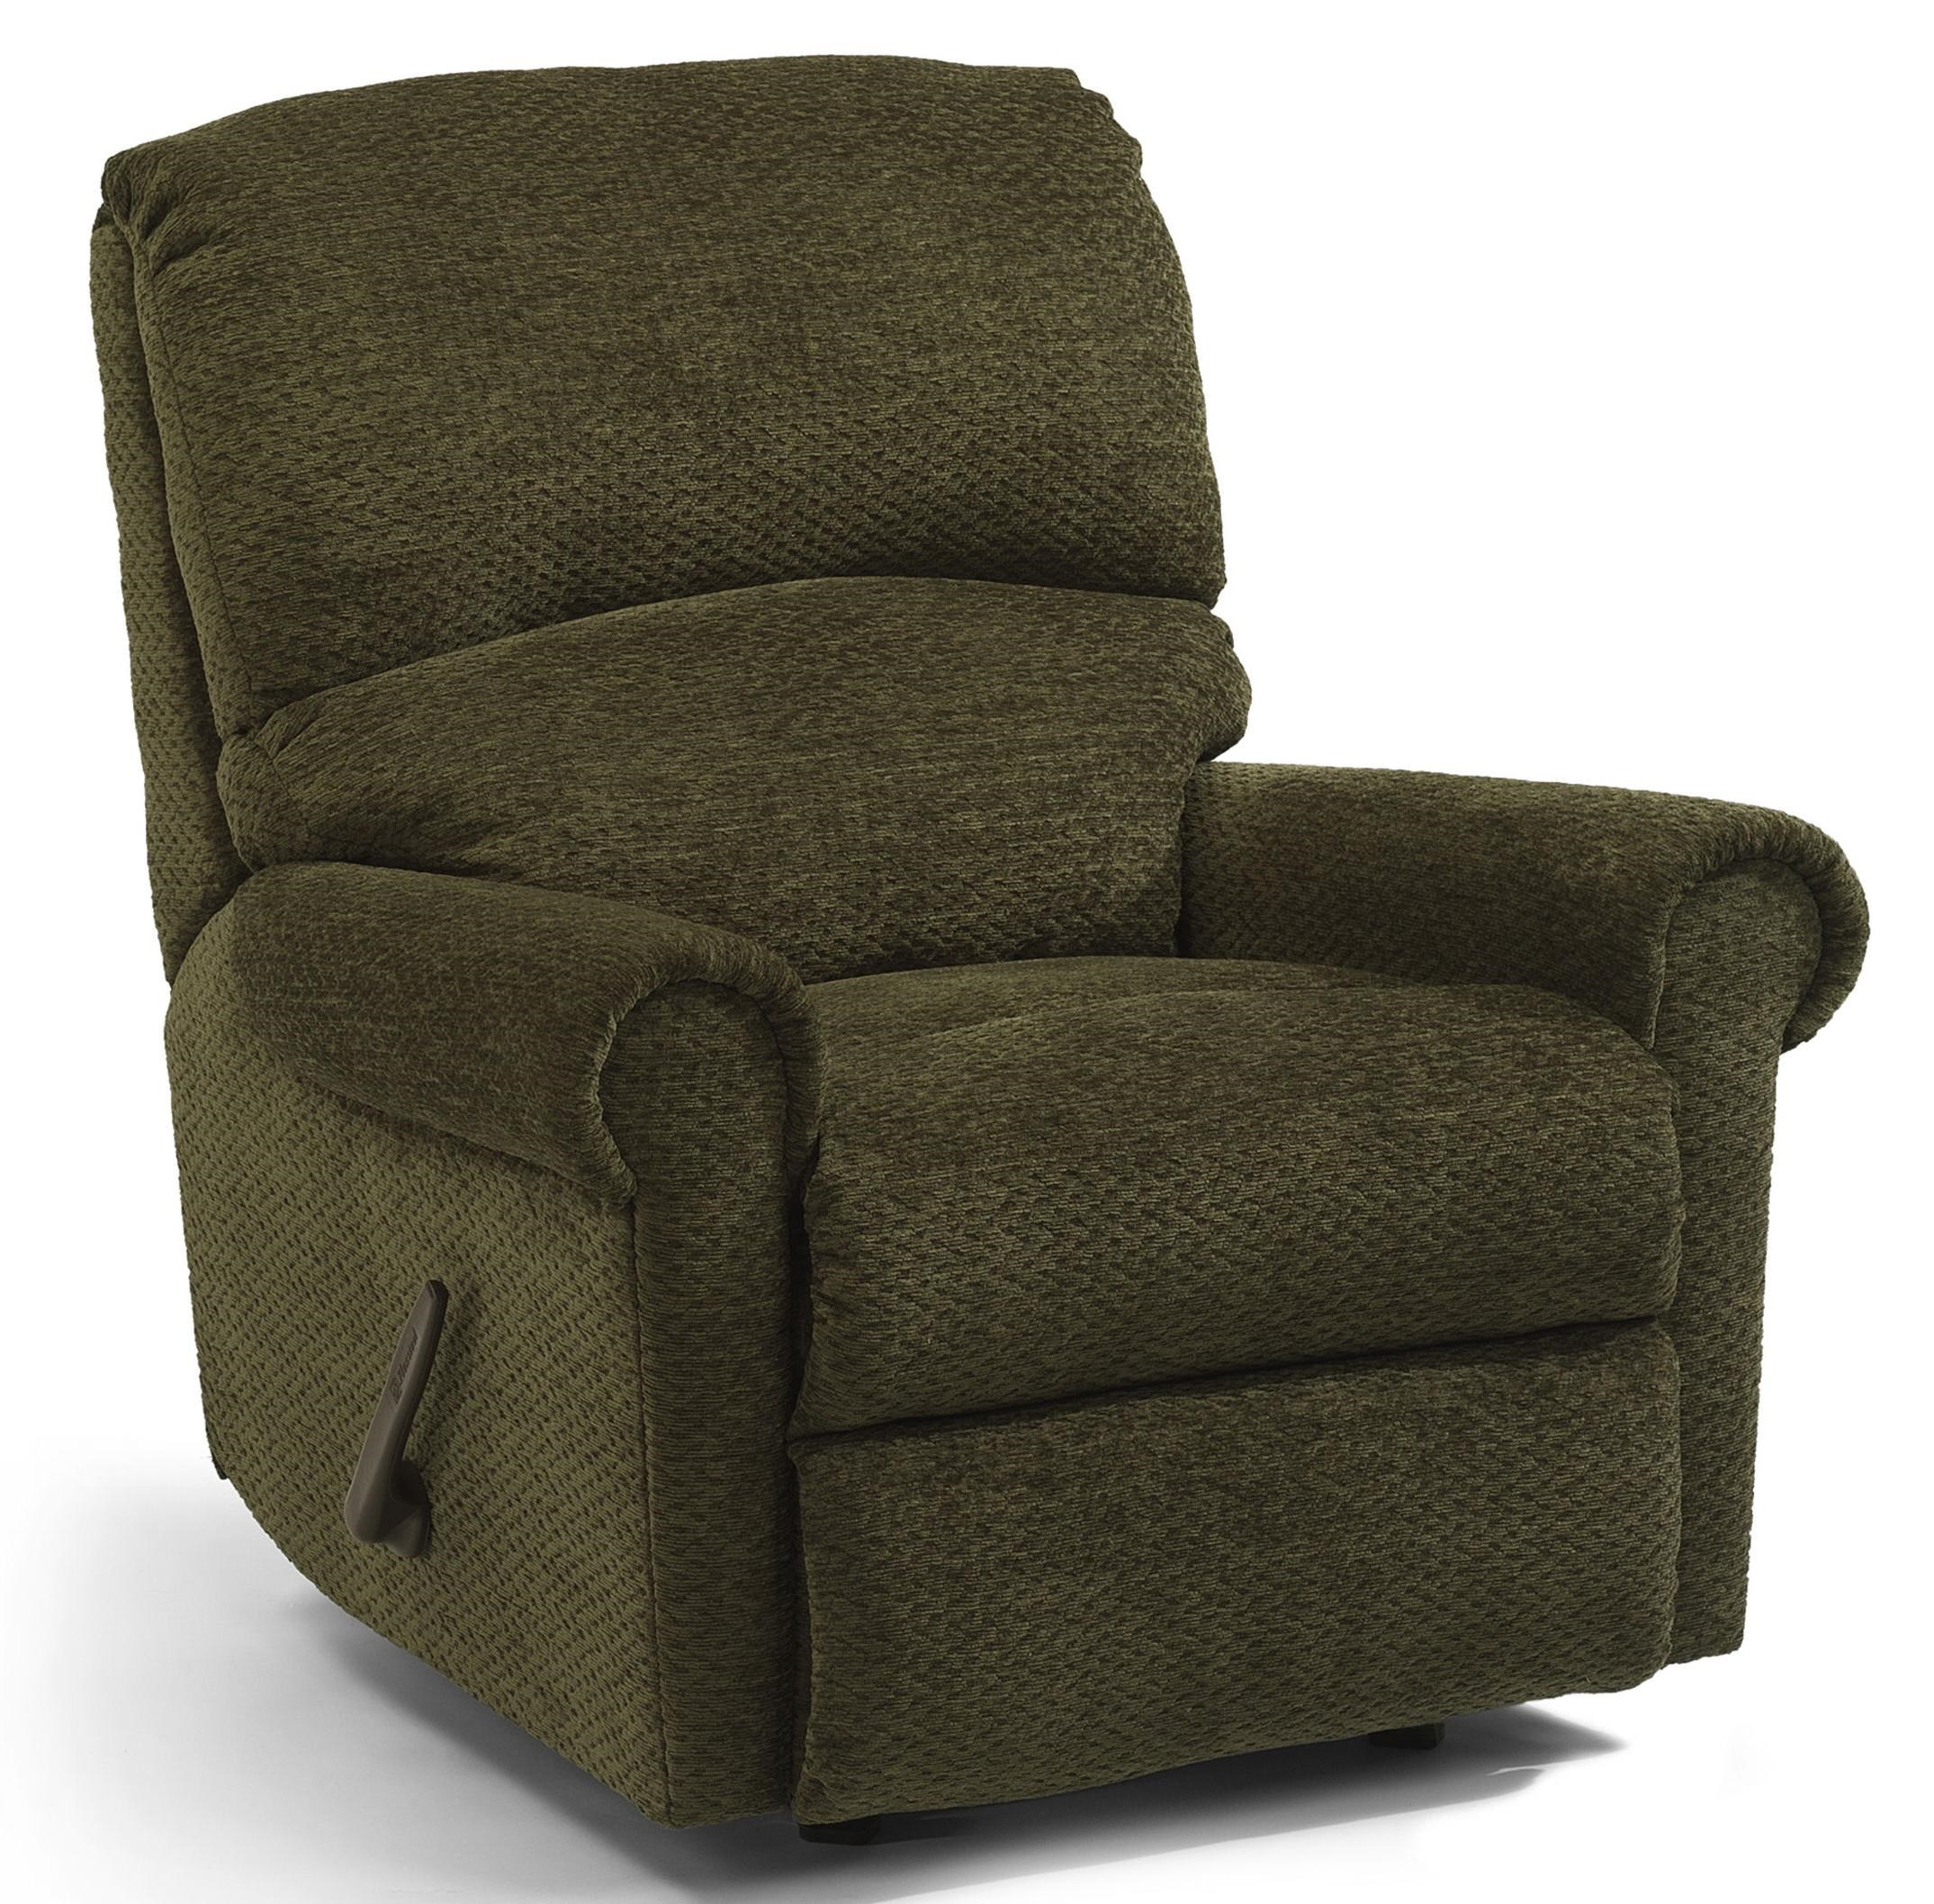 home decor furniture markham flexsteel markham swivel glider recliner with rolled arms 10988